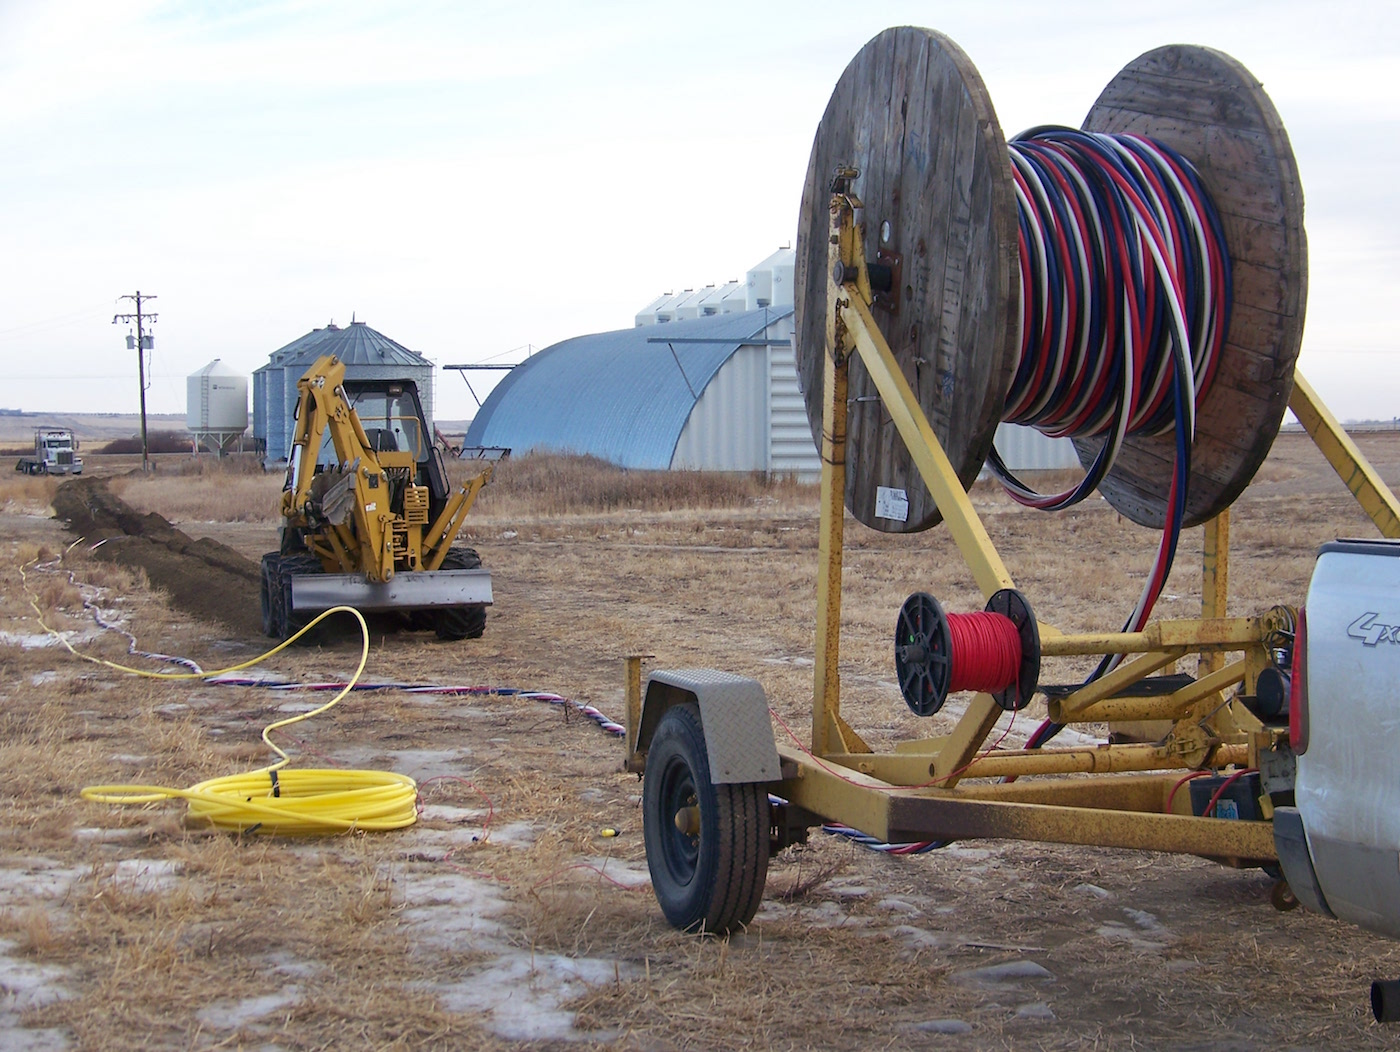 Spooling cable into trench